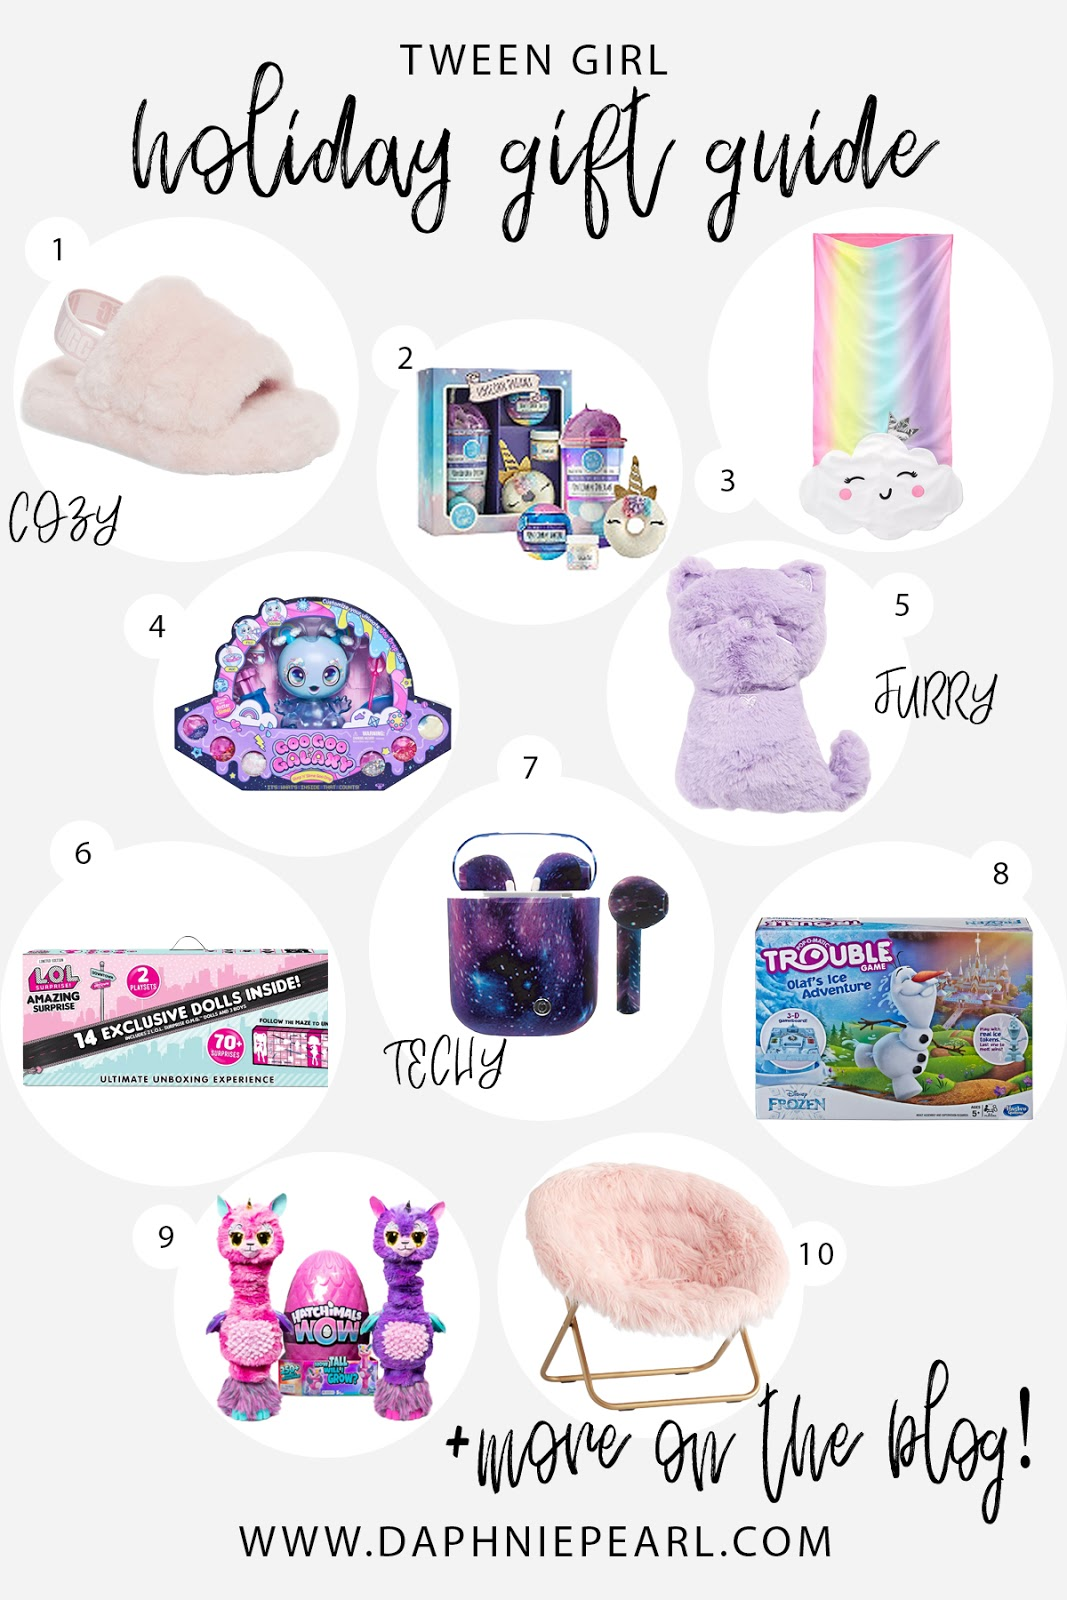 Tween Girls Gift Guide! Unique girl gift ideas for christmas birthday present affordable under $10 under $20 under $30 under $50 under $100 lol surprise ugg ipod hatchimals poopsie slime